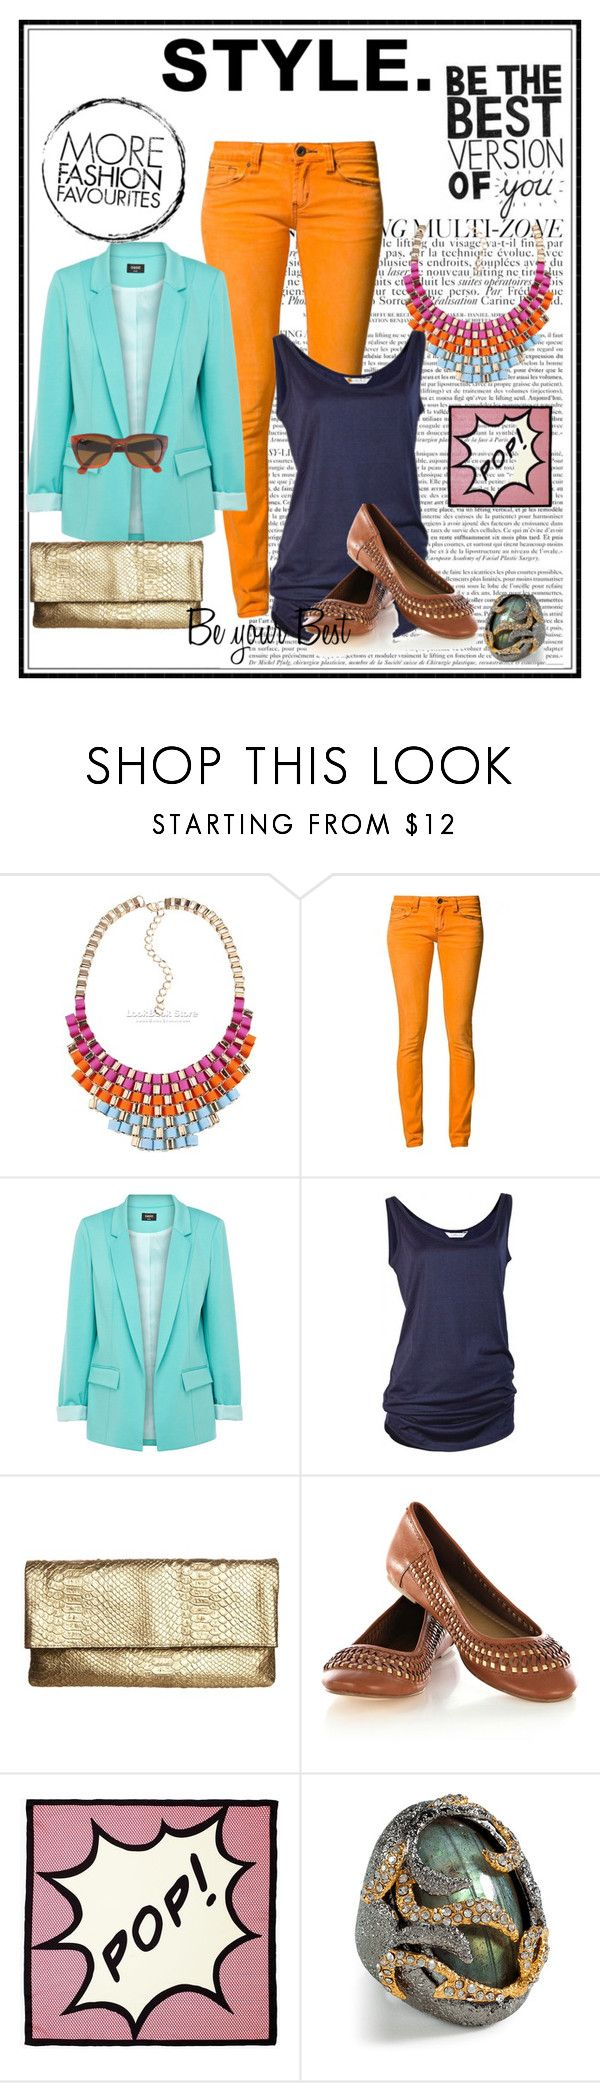 """Step into Spring"" by clintonkelly ❤ liked on Polyvore featuring One Green Elephant, Oasis, Juicy Couture, Kate Spade, Alexis Bittar, J.Crew and fashion style inspiration colorblocking"